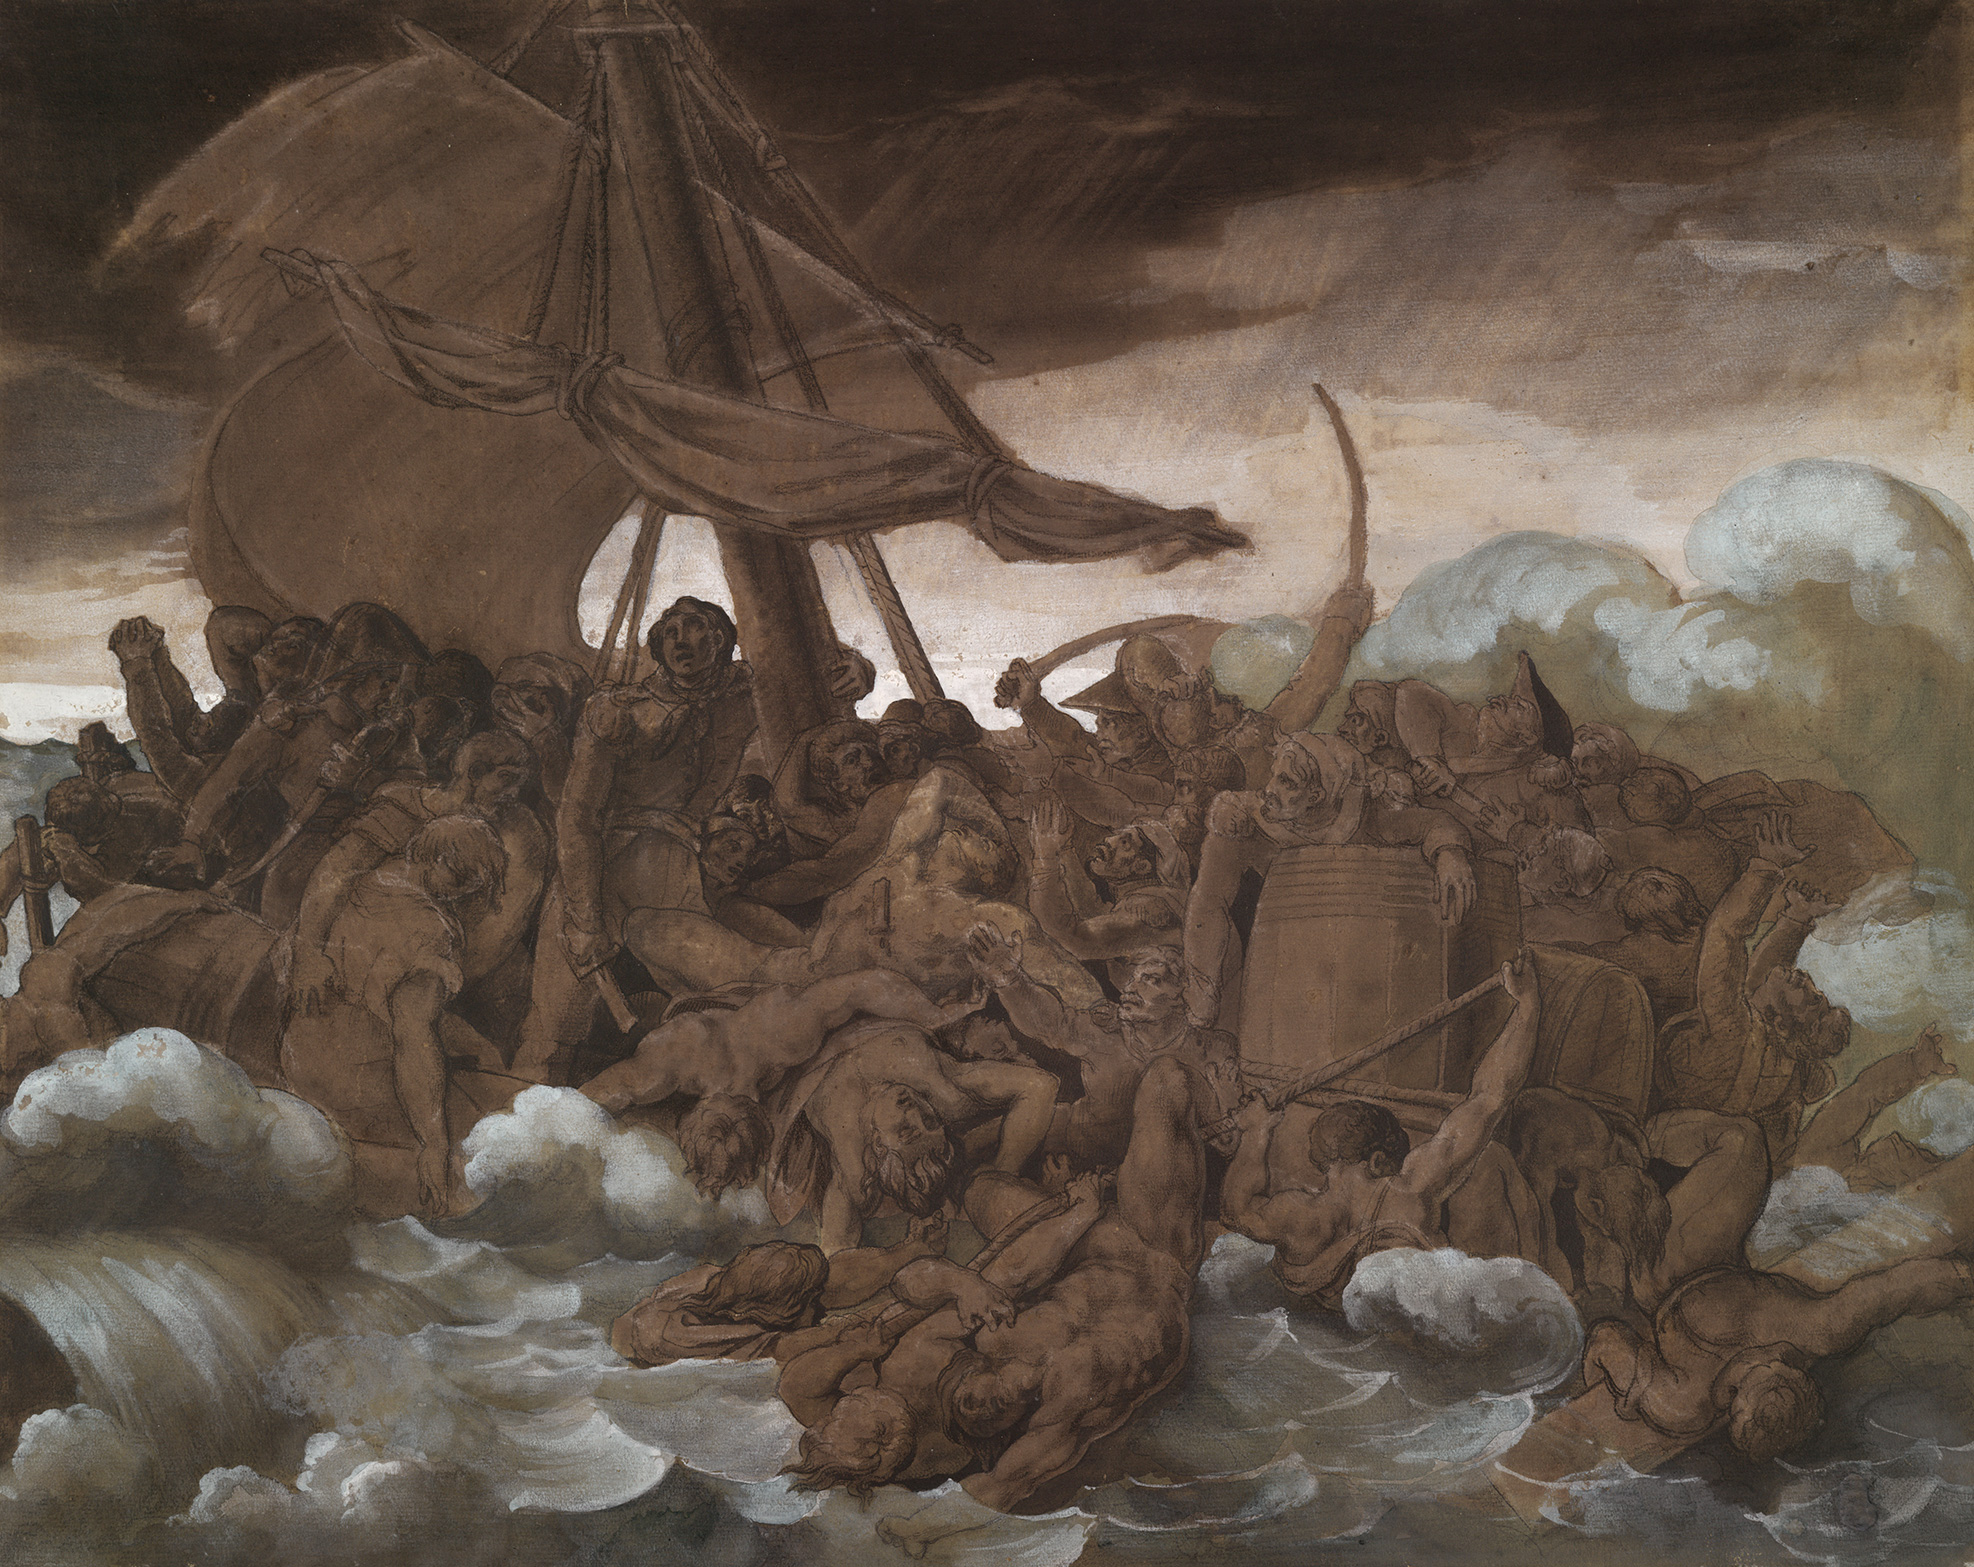 Théodore Géricault, French, The Mutiny on the Raft of the Medusa, 1818. Drawing. Harvard Art Museums/Fogg Museum, Bequest of Grenville L. Winthrop, 1943.824.